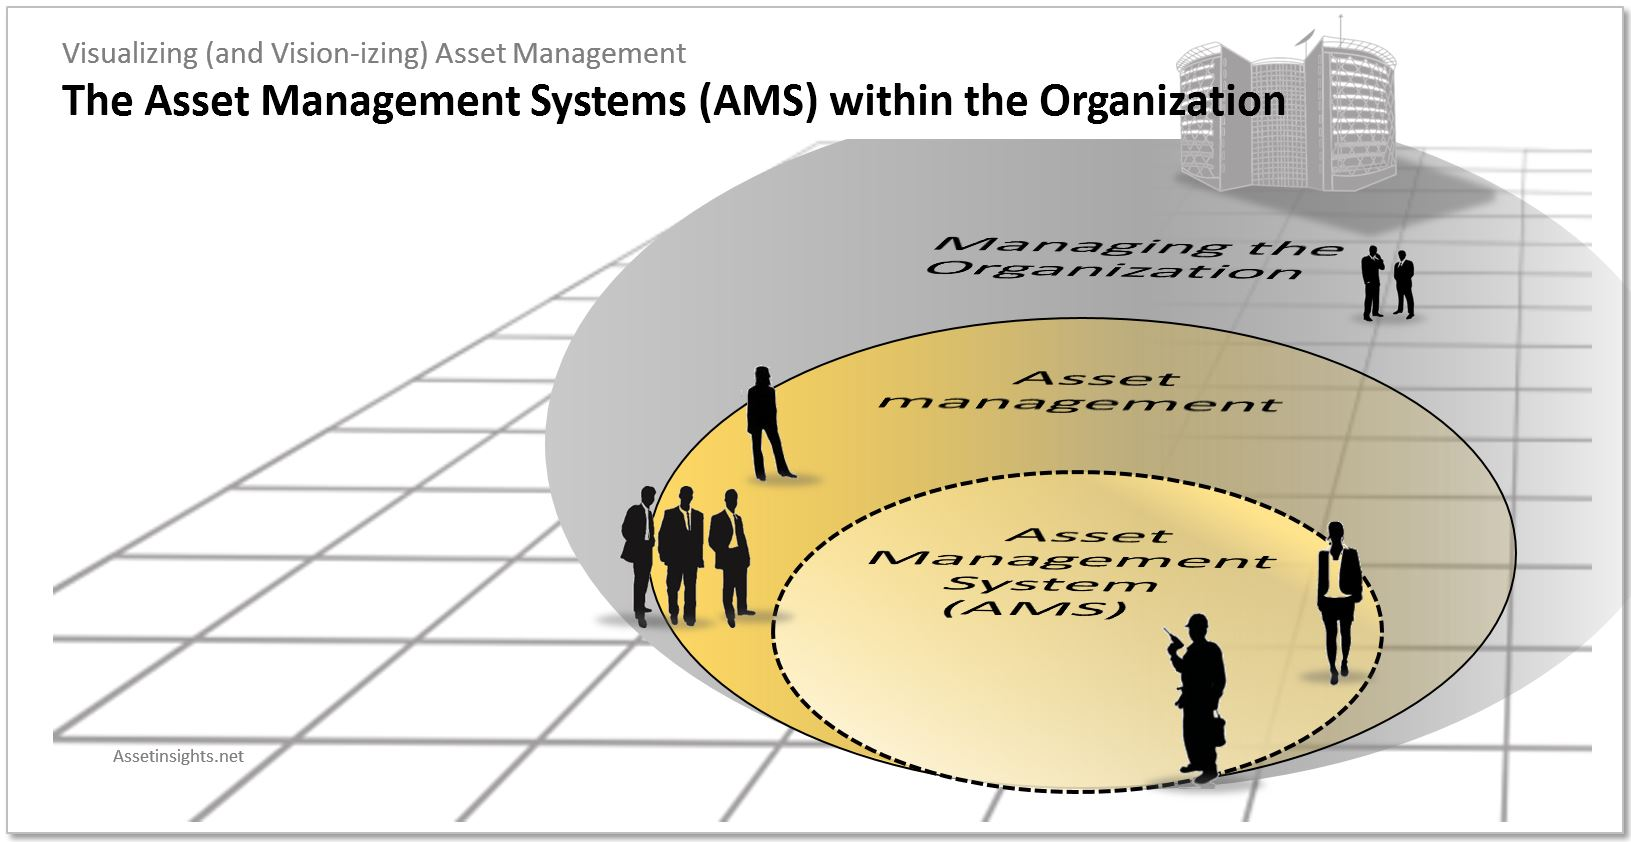 The Asset Management System (AMS) within the organization